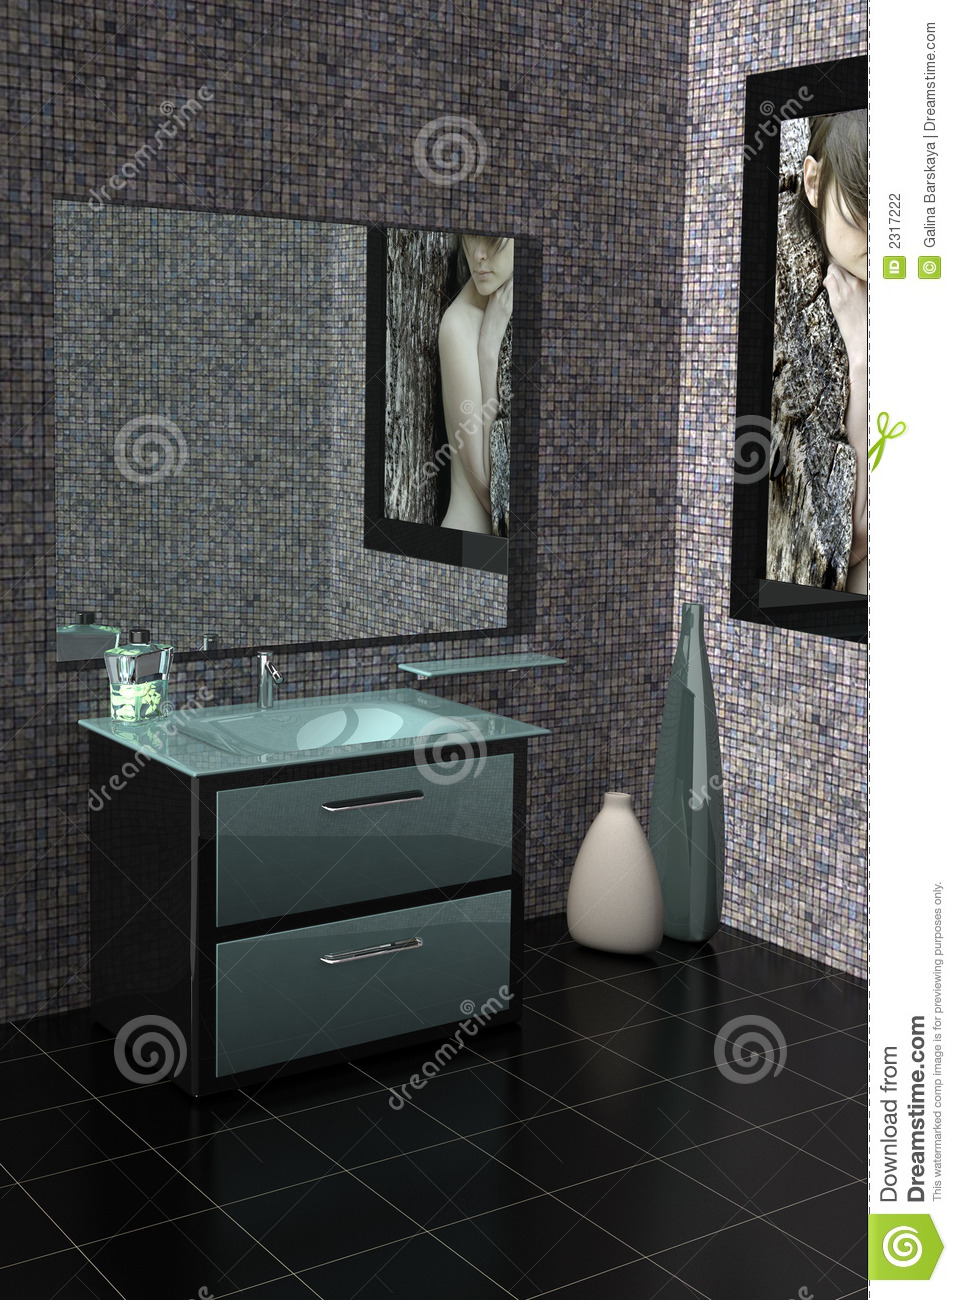 innoplus 3d badplaner full version download checked out crossword. Black Bedroom Furniture Sets. Home Design Ideas